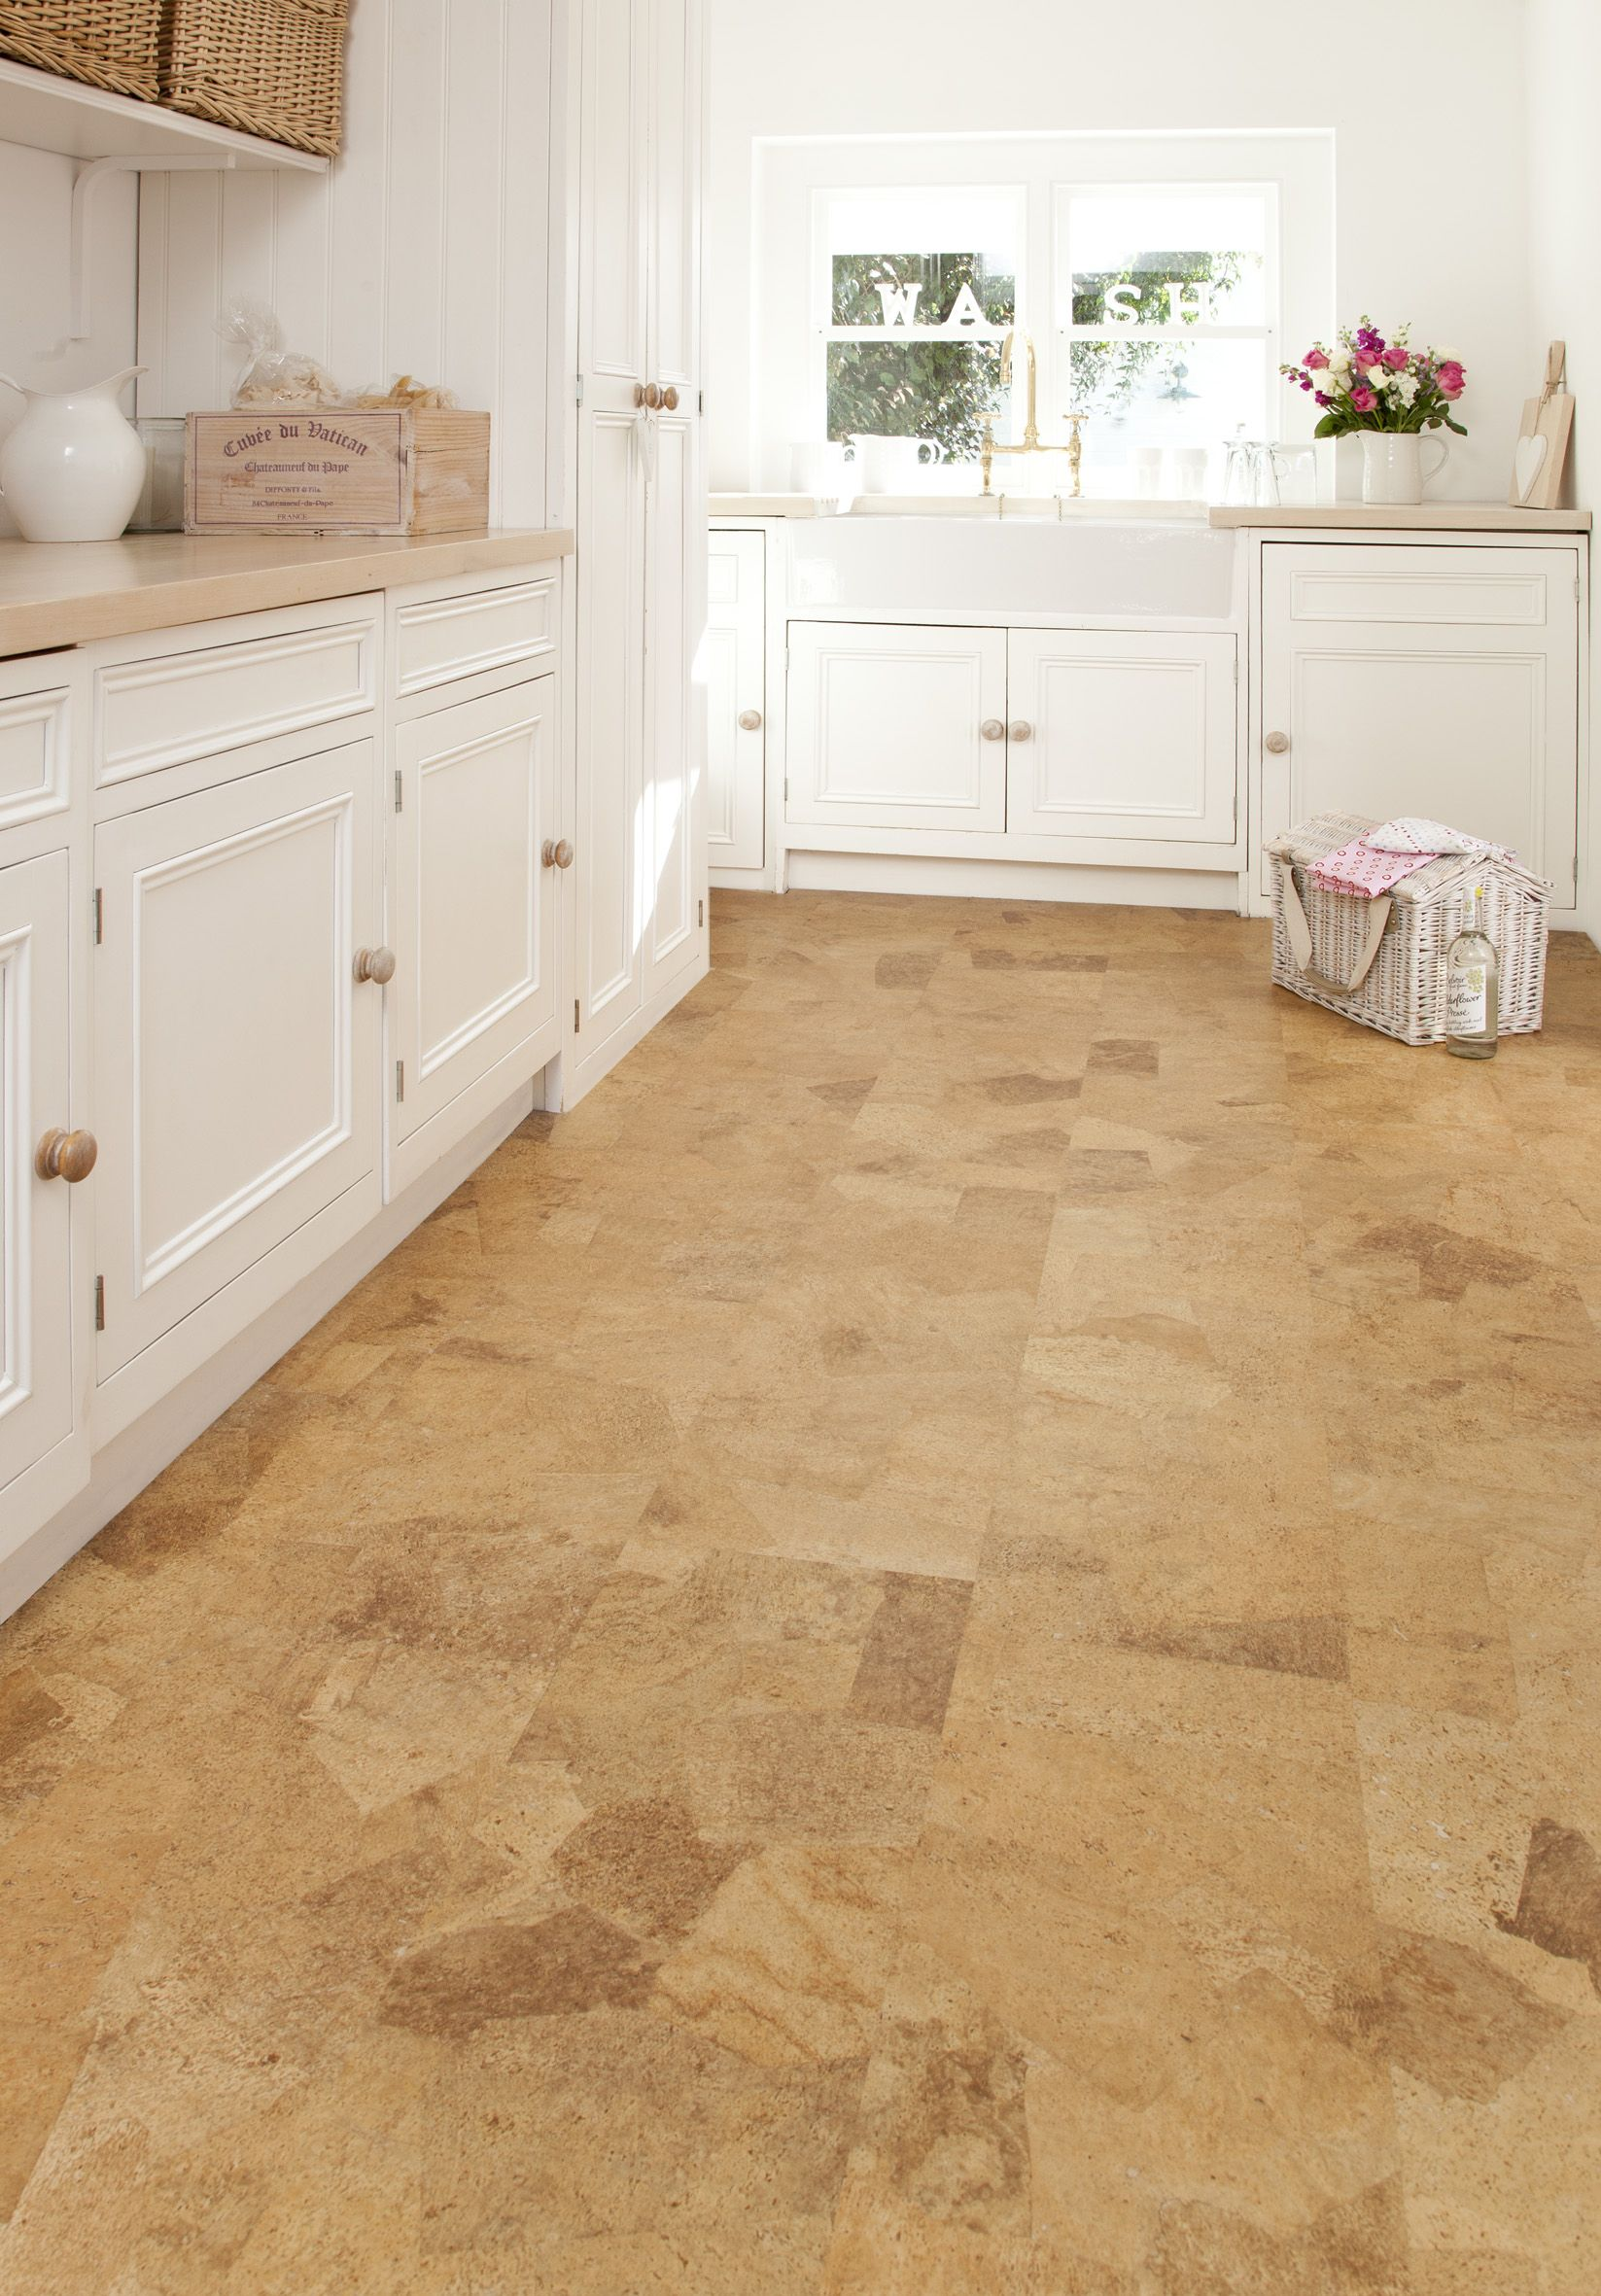 floor tile designs cork kitchen flooring Cork floor kitchen